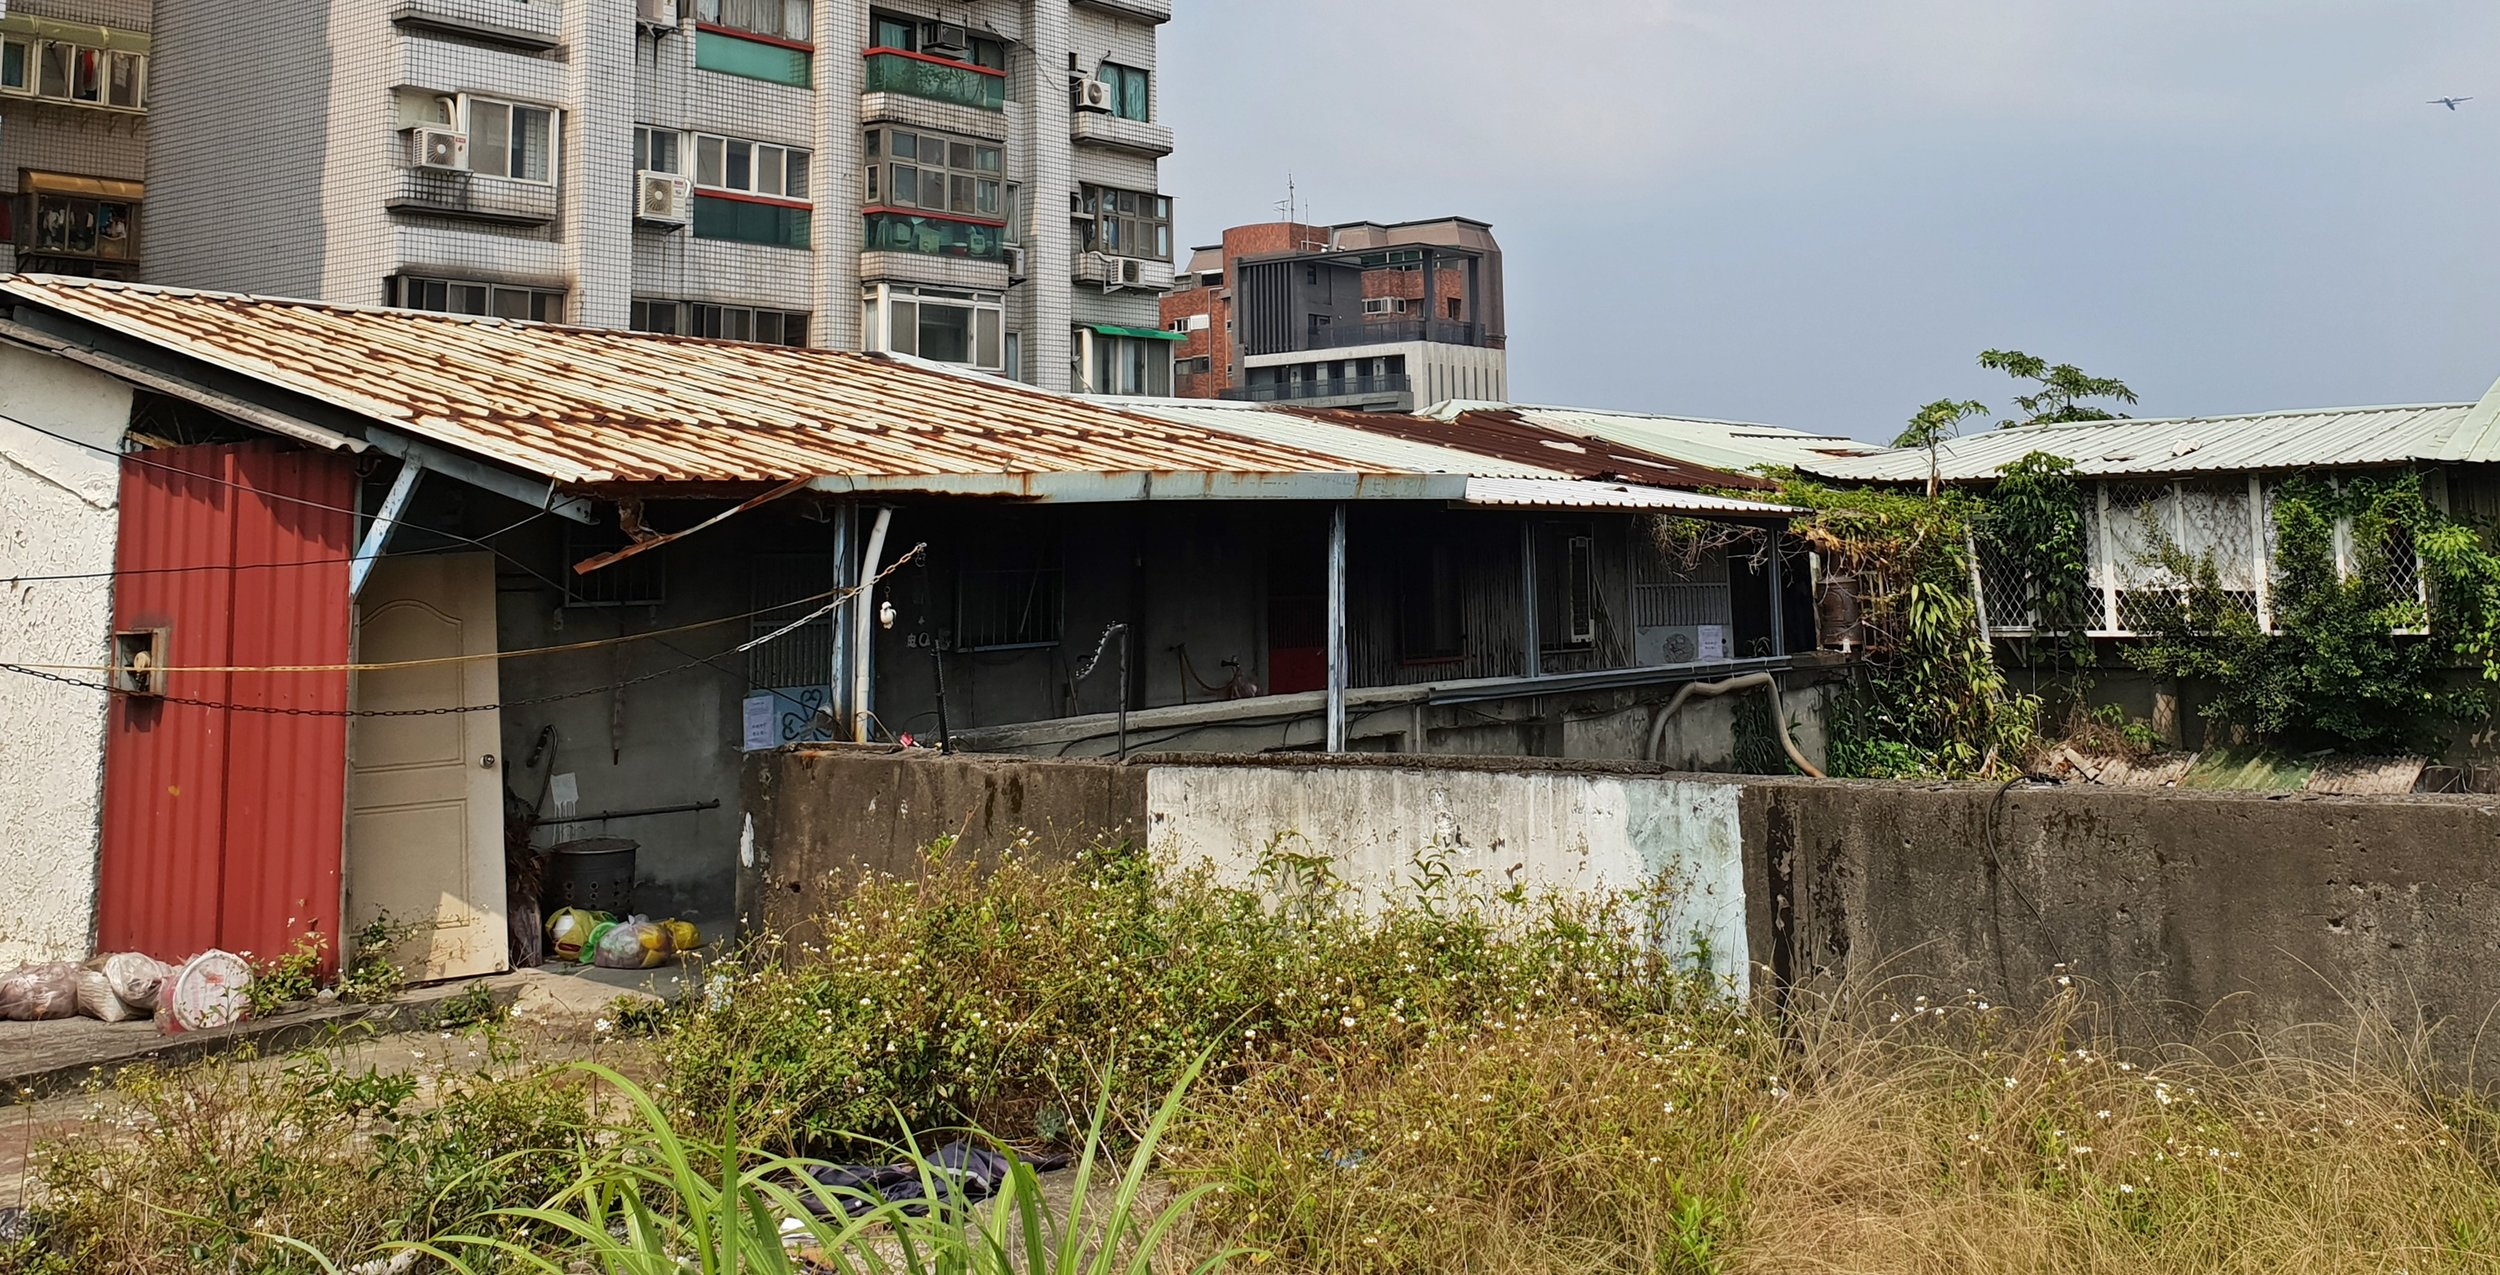 Informal housing on the roof at Lanzhou